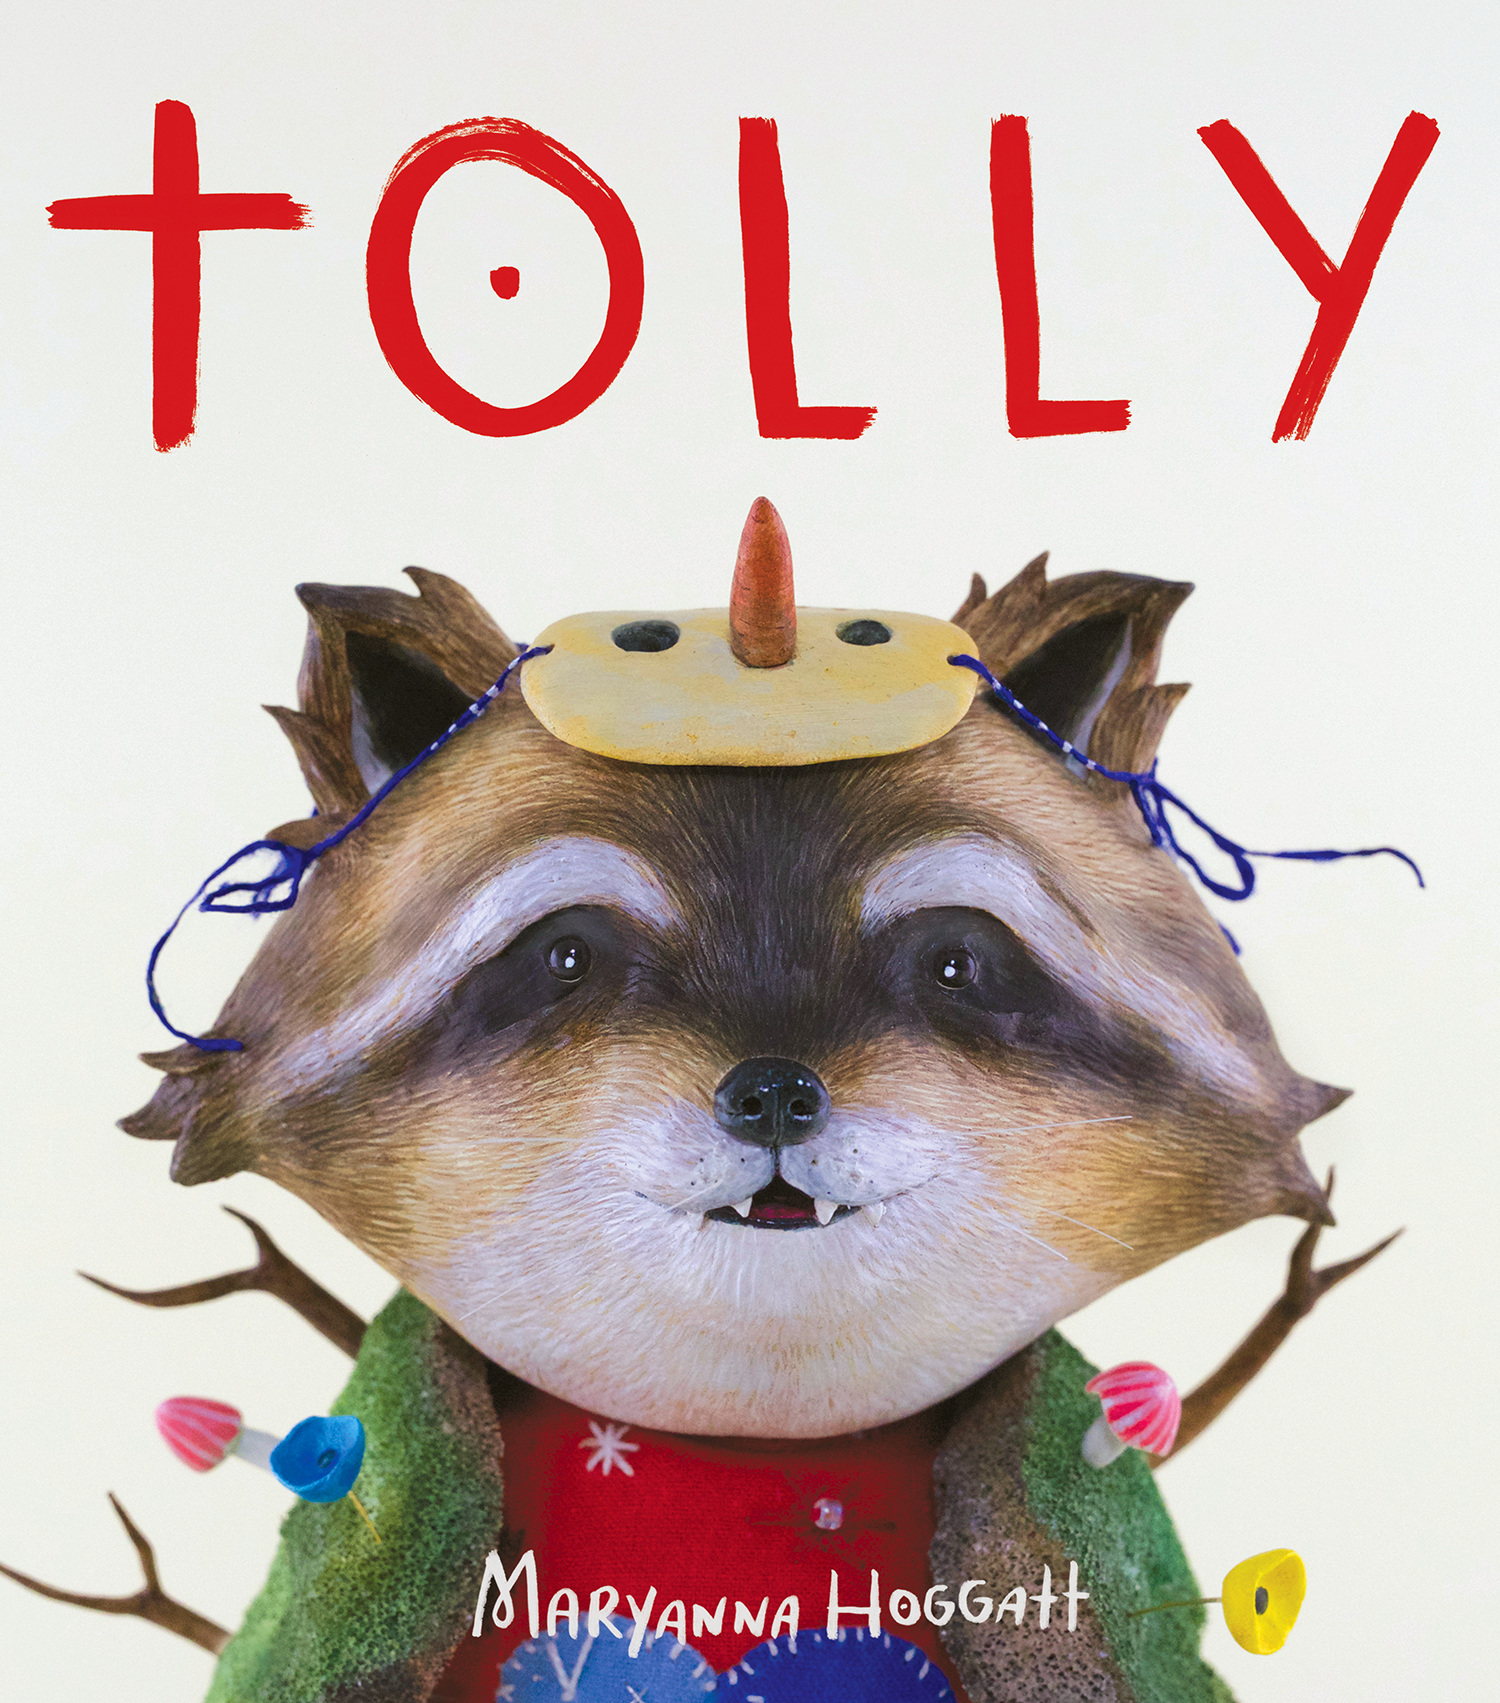 TOLLY2_Promo_Cover_WEB_1500.jpg